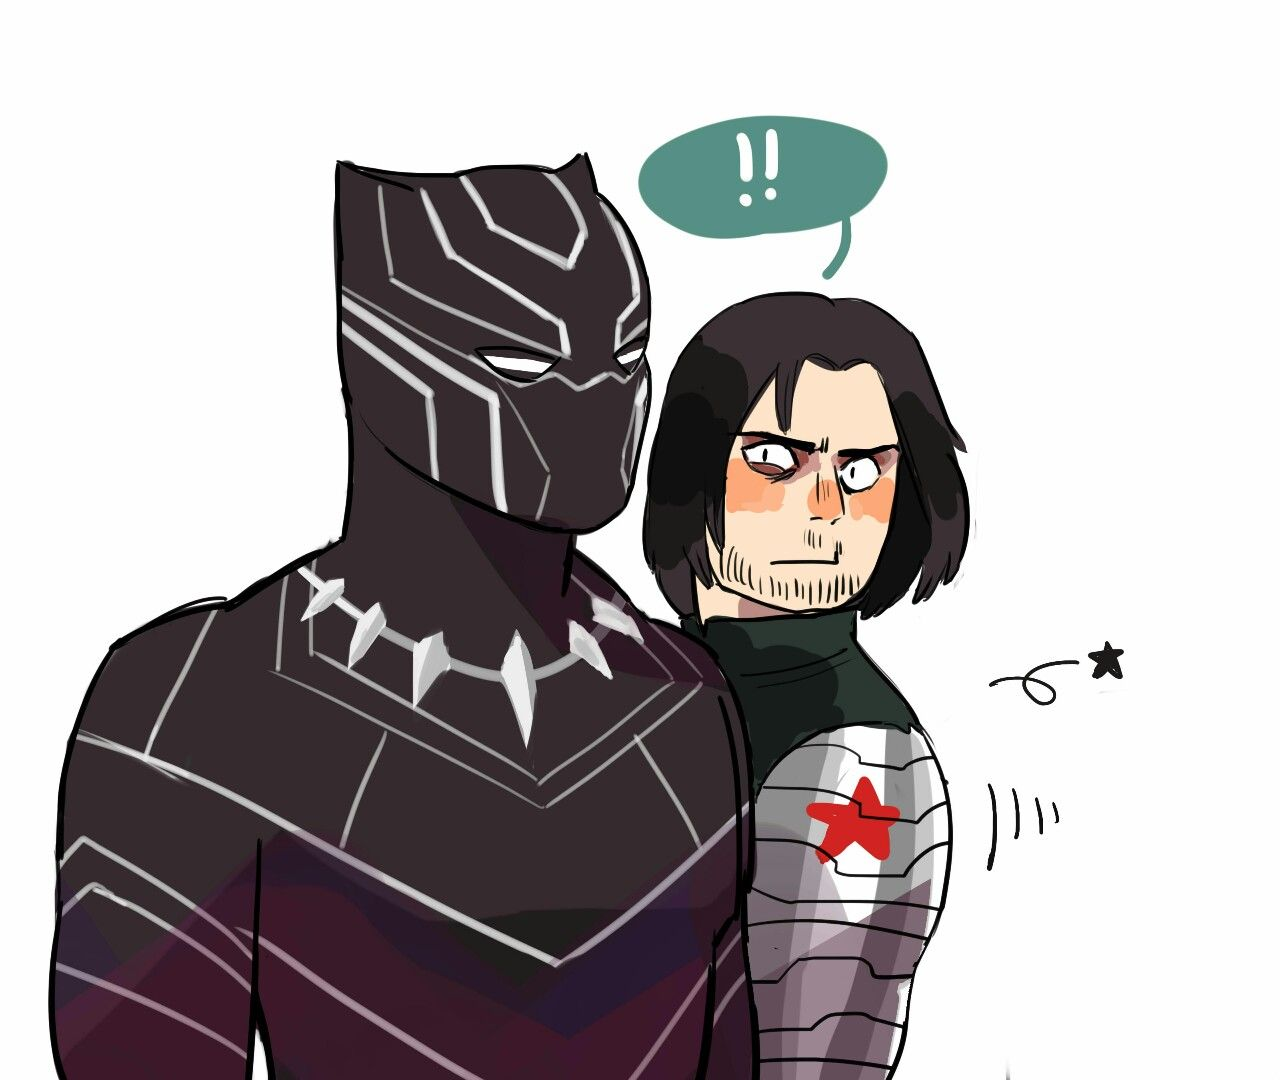 Bucky and t'challa